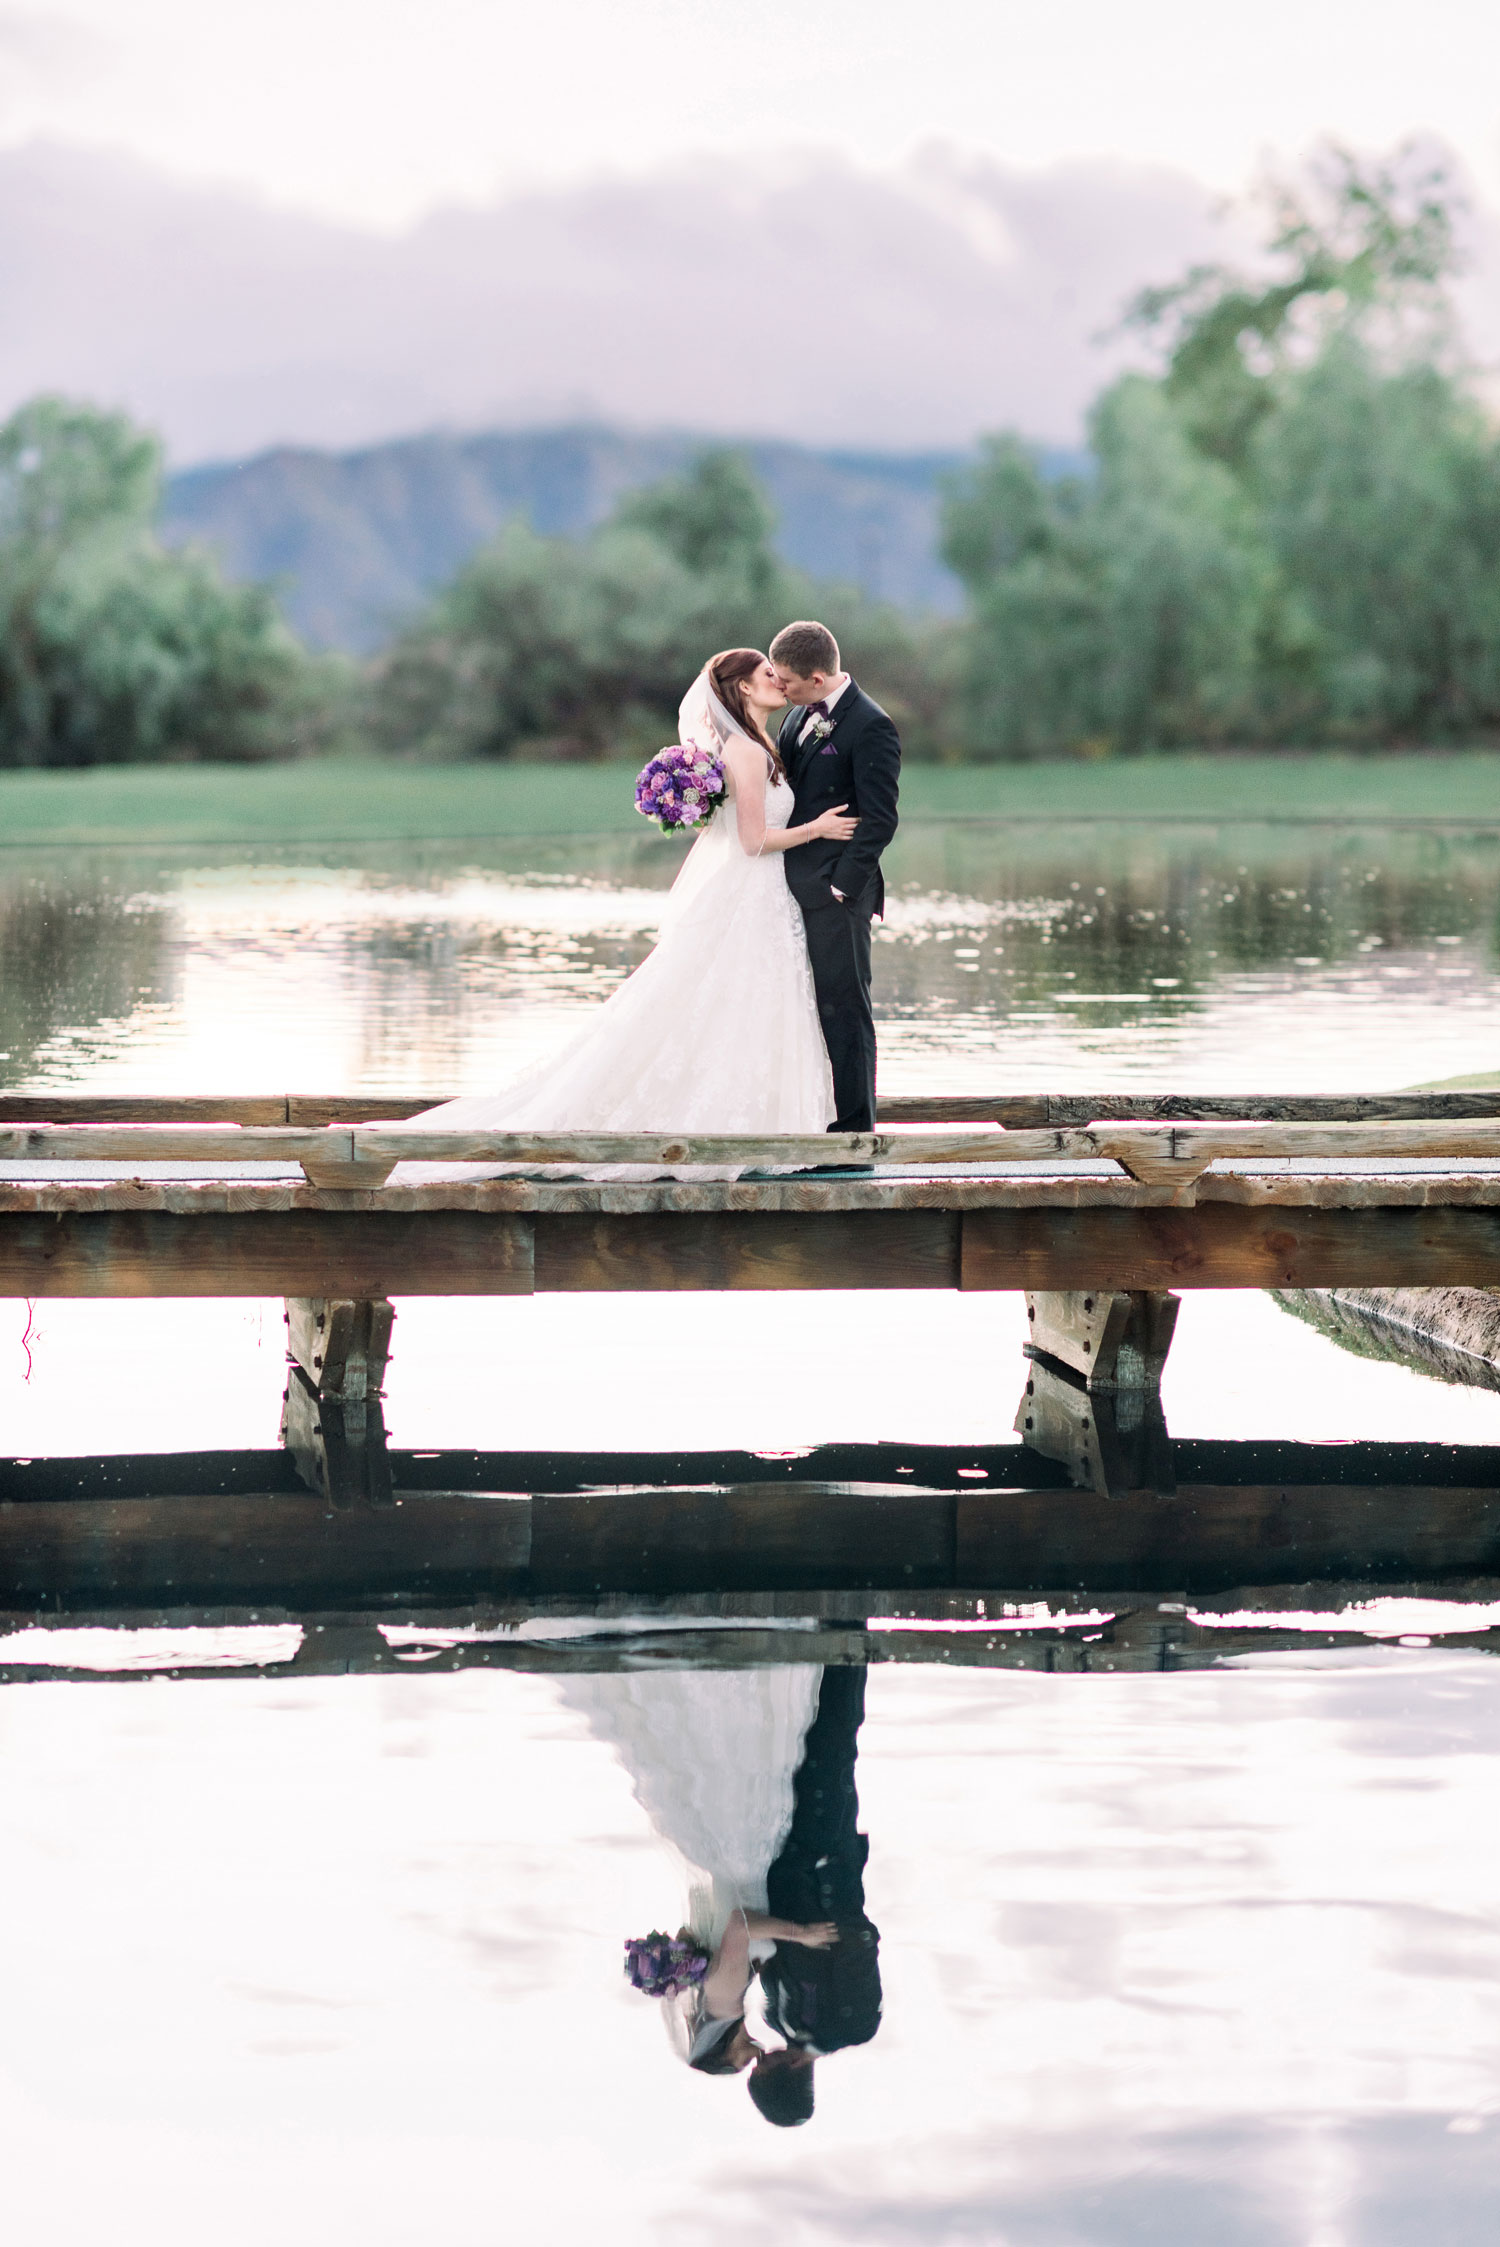 Custom Retouched Photo with Background Swap on Wedding Portrait of Couple on Bridge